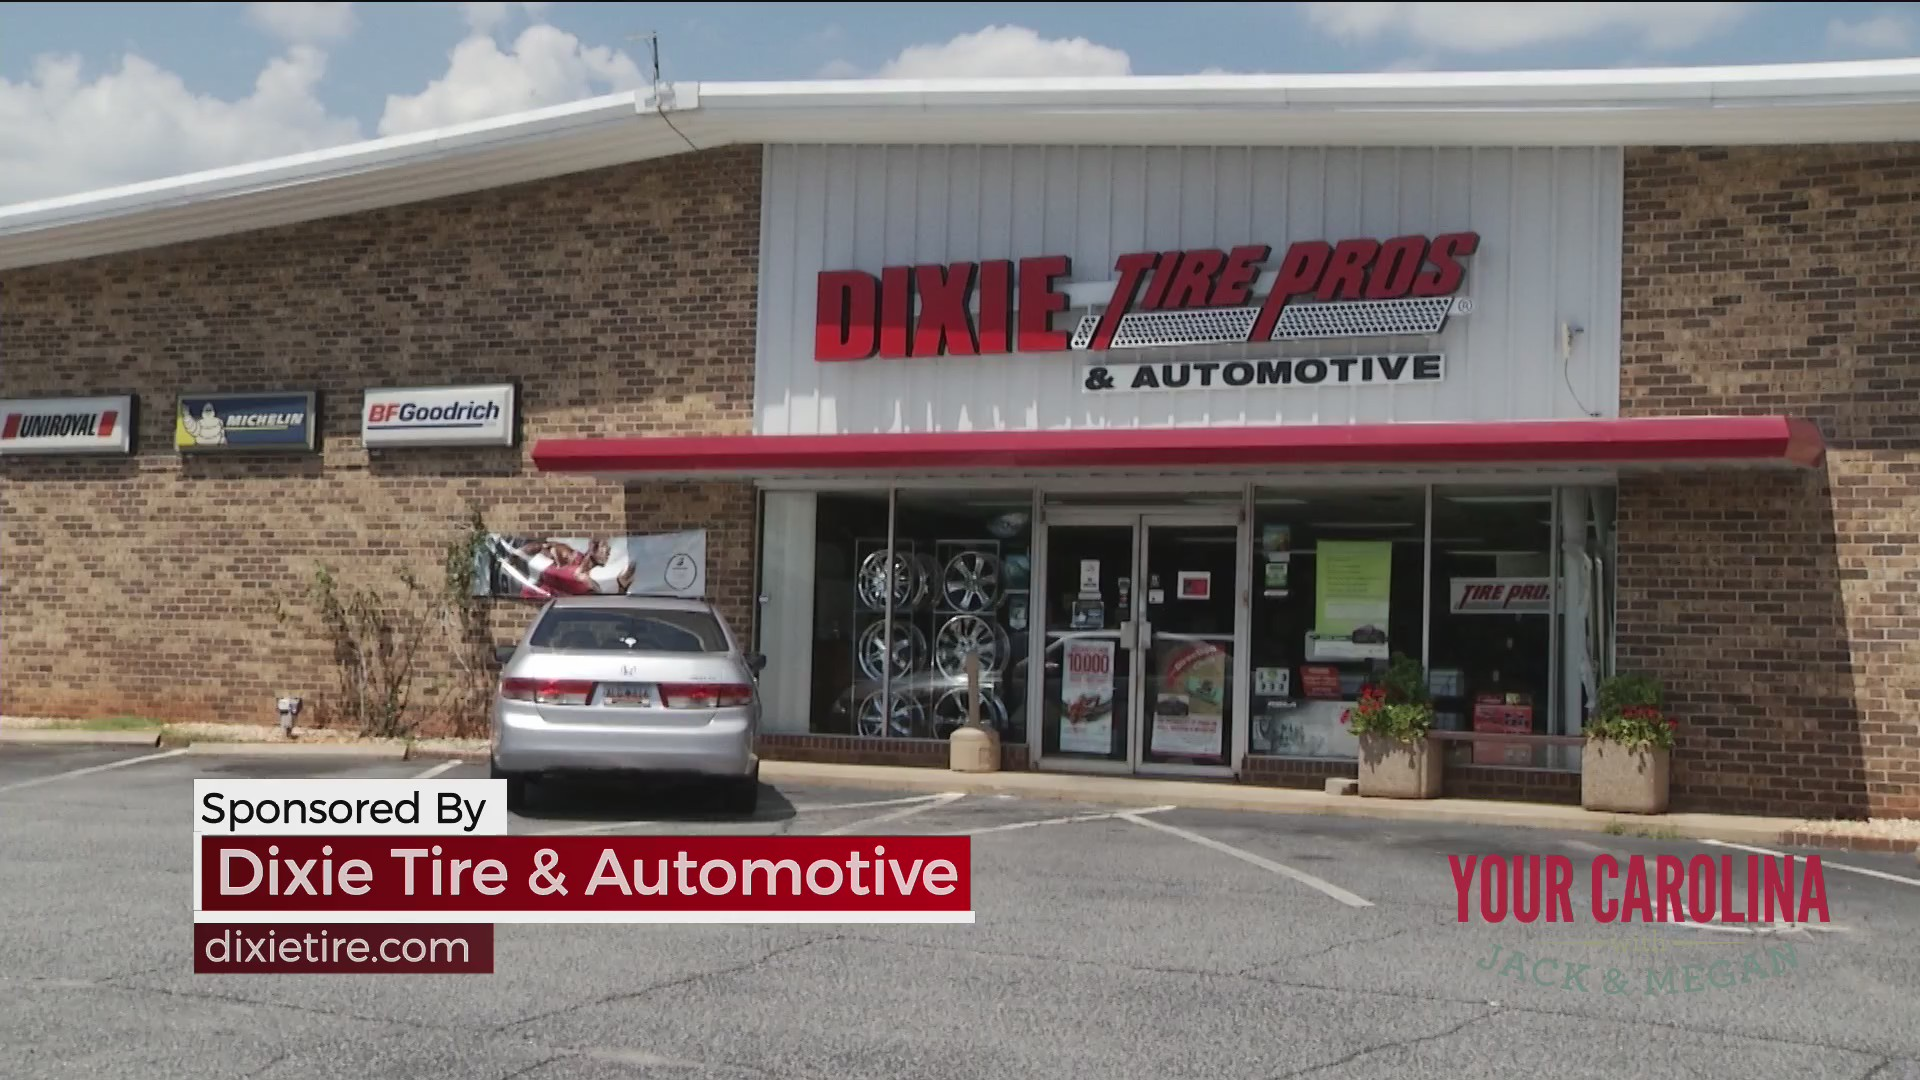 Dixie Tire & Automotive - Tires and Auto Repair in Spartanburg